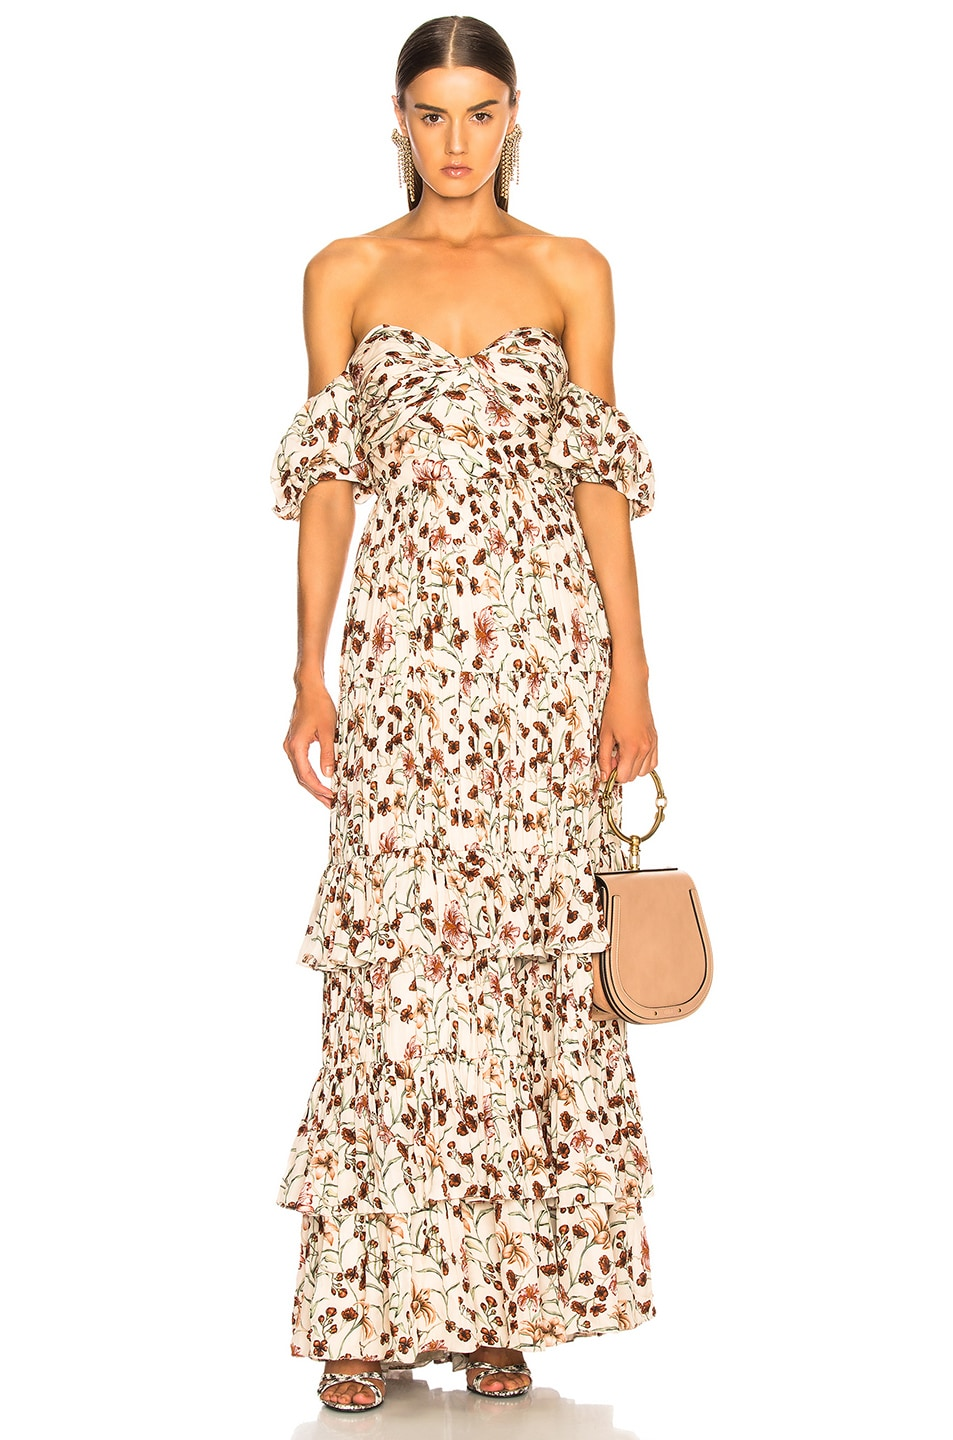 The Lady Of Shalott Off-The-Shoulder Floral-Print Crepe De Chine Gown, Floral,White